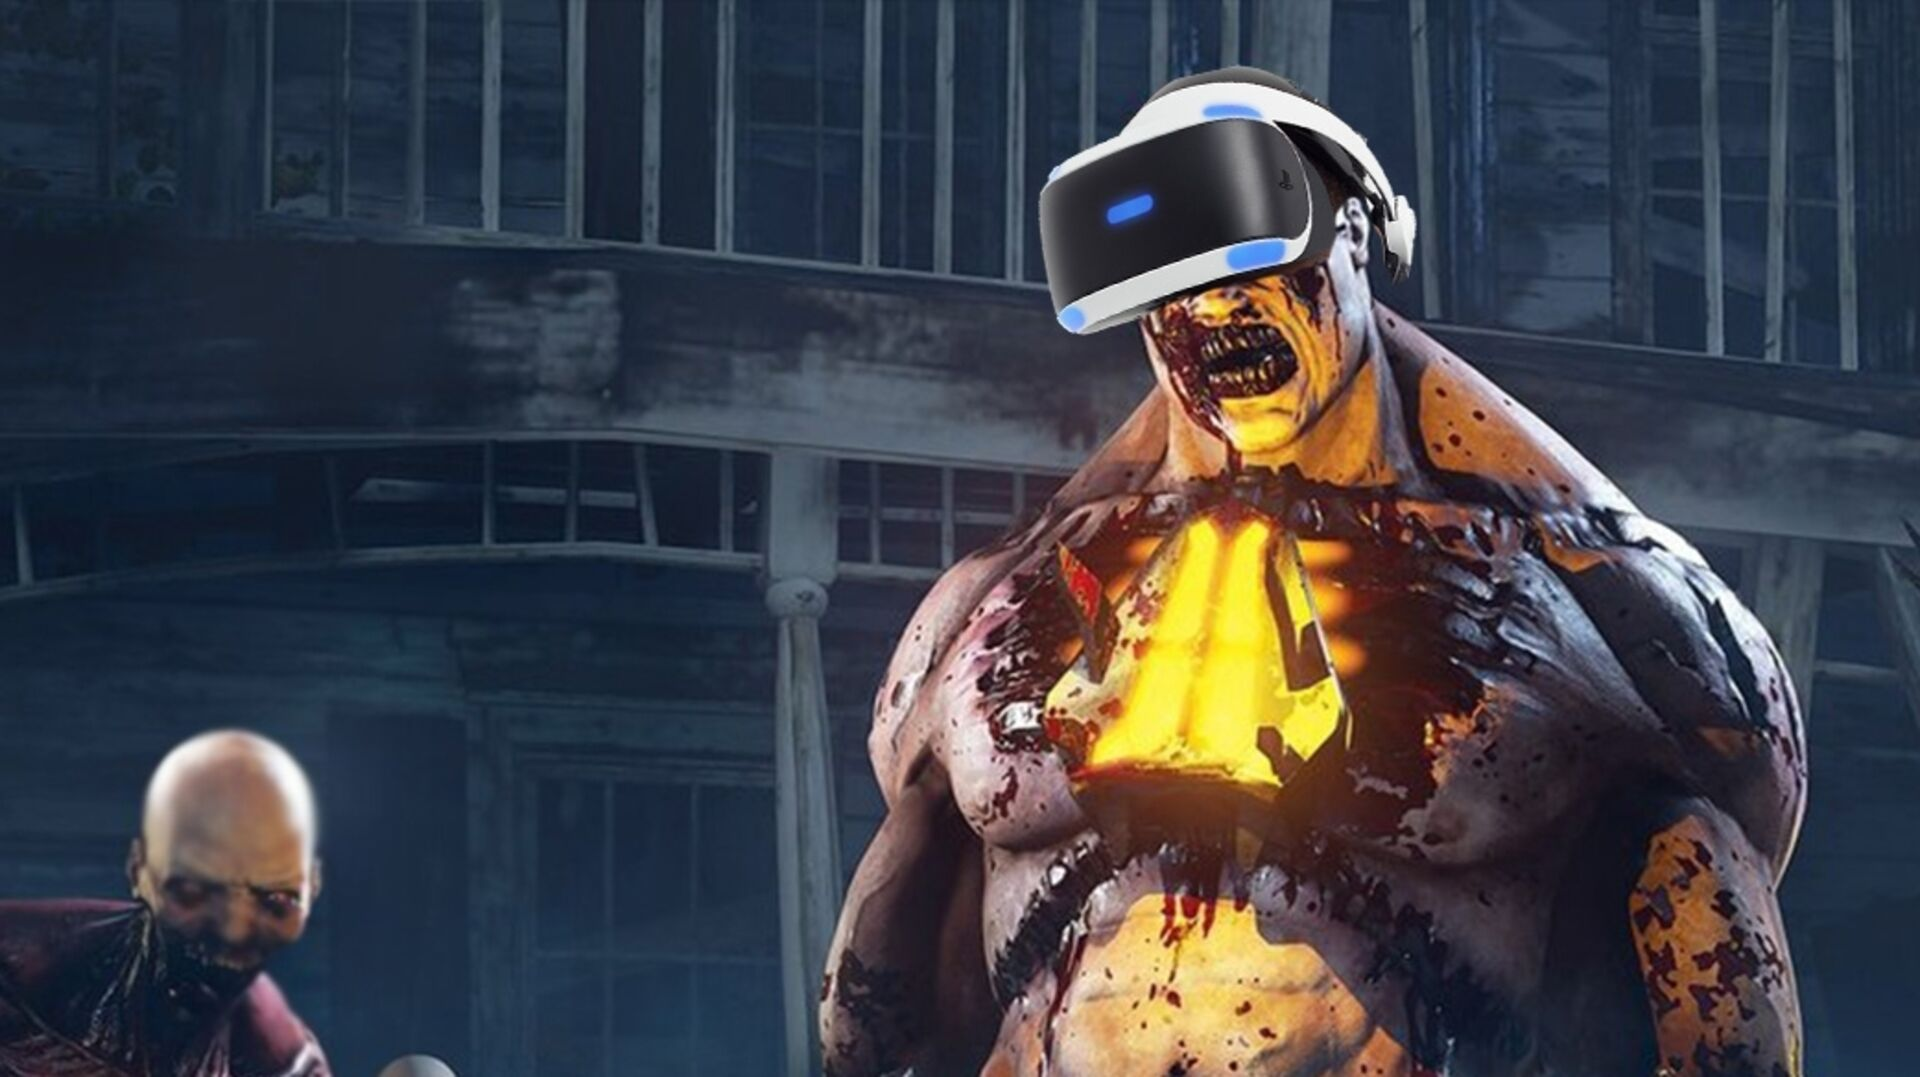 Fear and frustration rule the day in Killing Floor